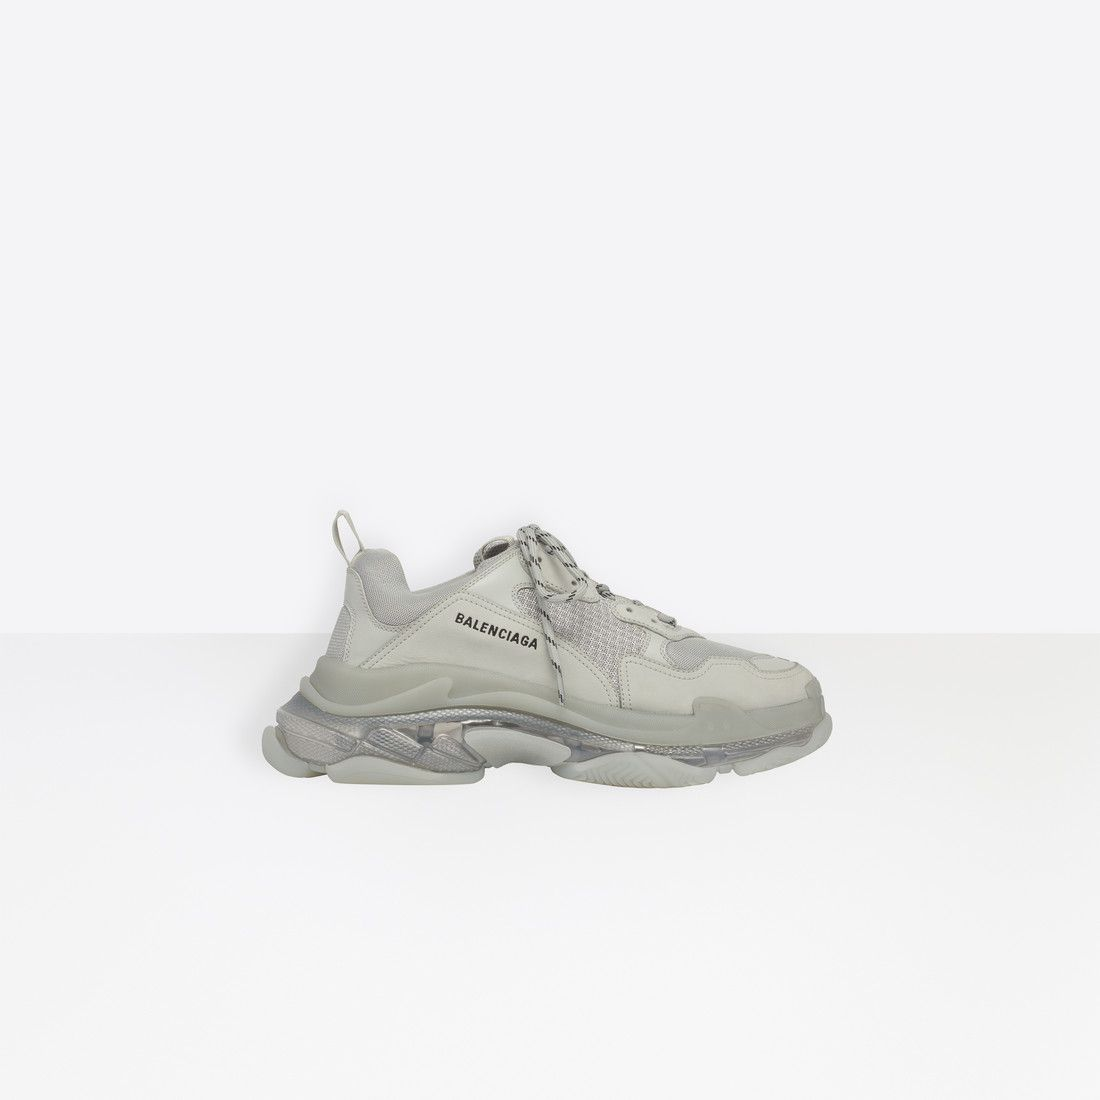 862162d59 Balenciaga Oversized multimaterial sneakers with air bubble inside ...